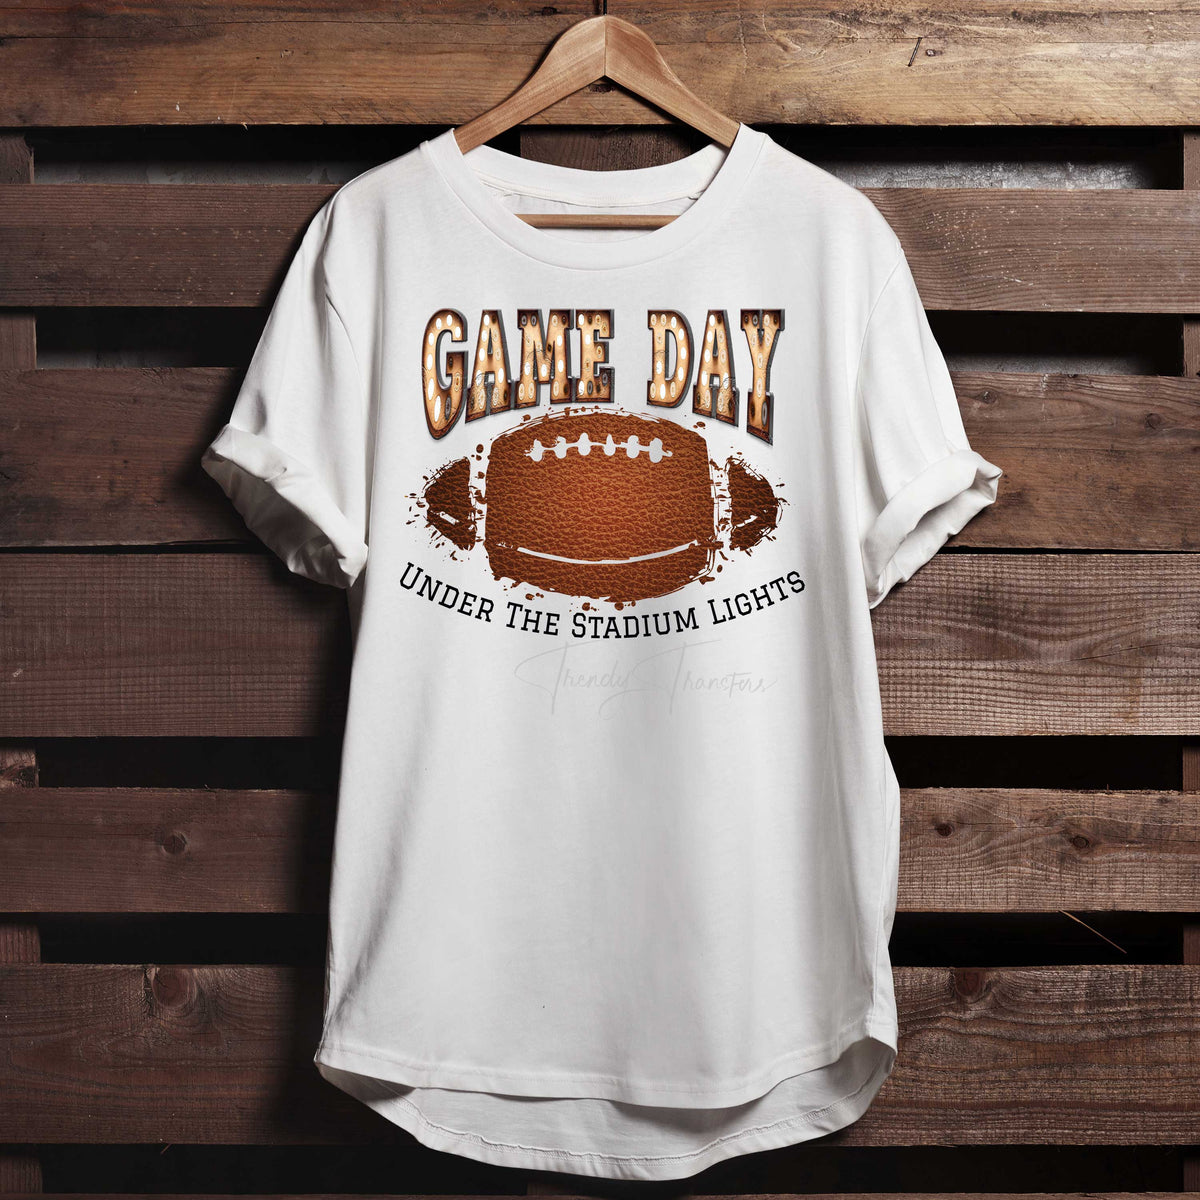 Game Day Sublimation Transfer - Trendy Transfers